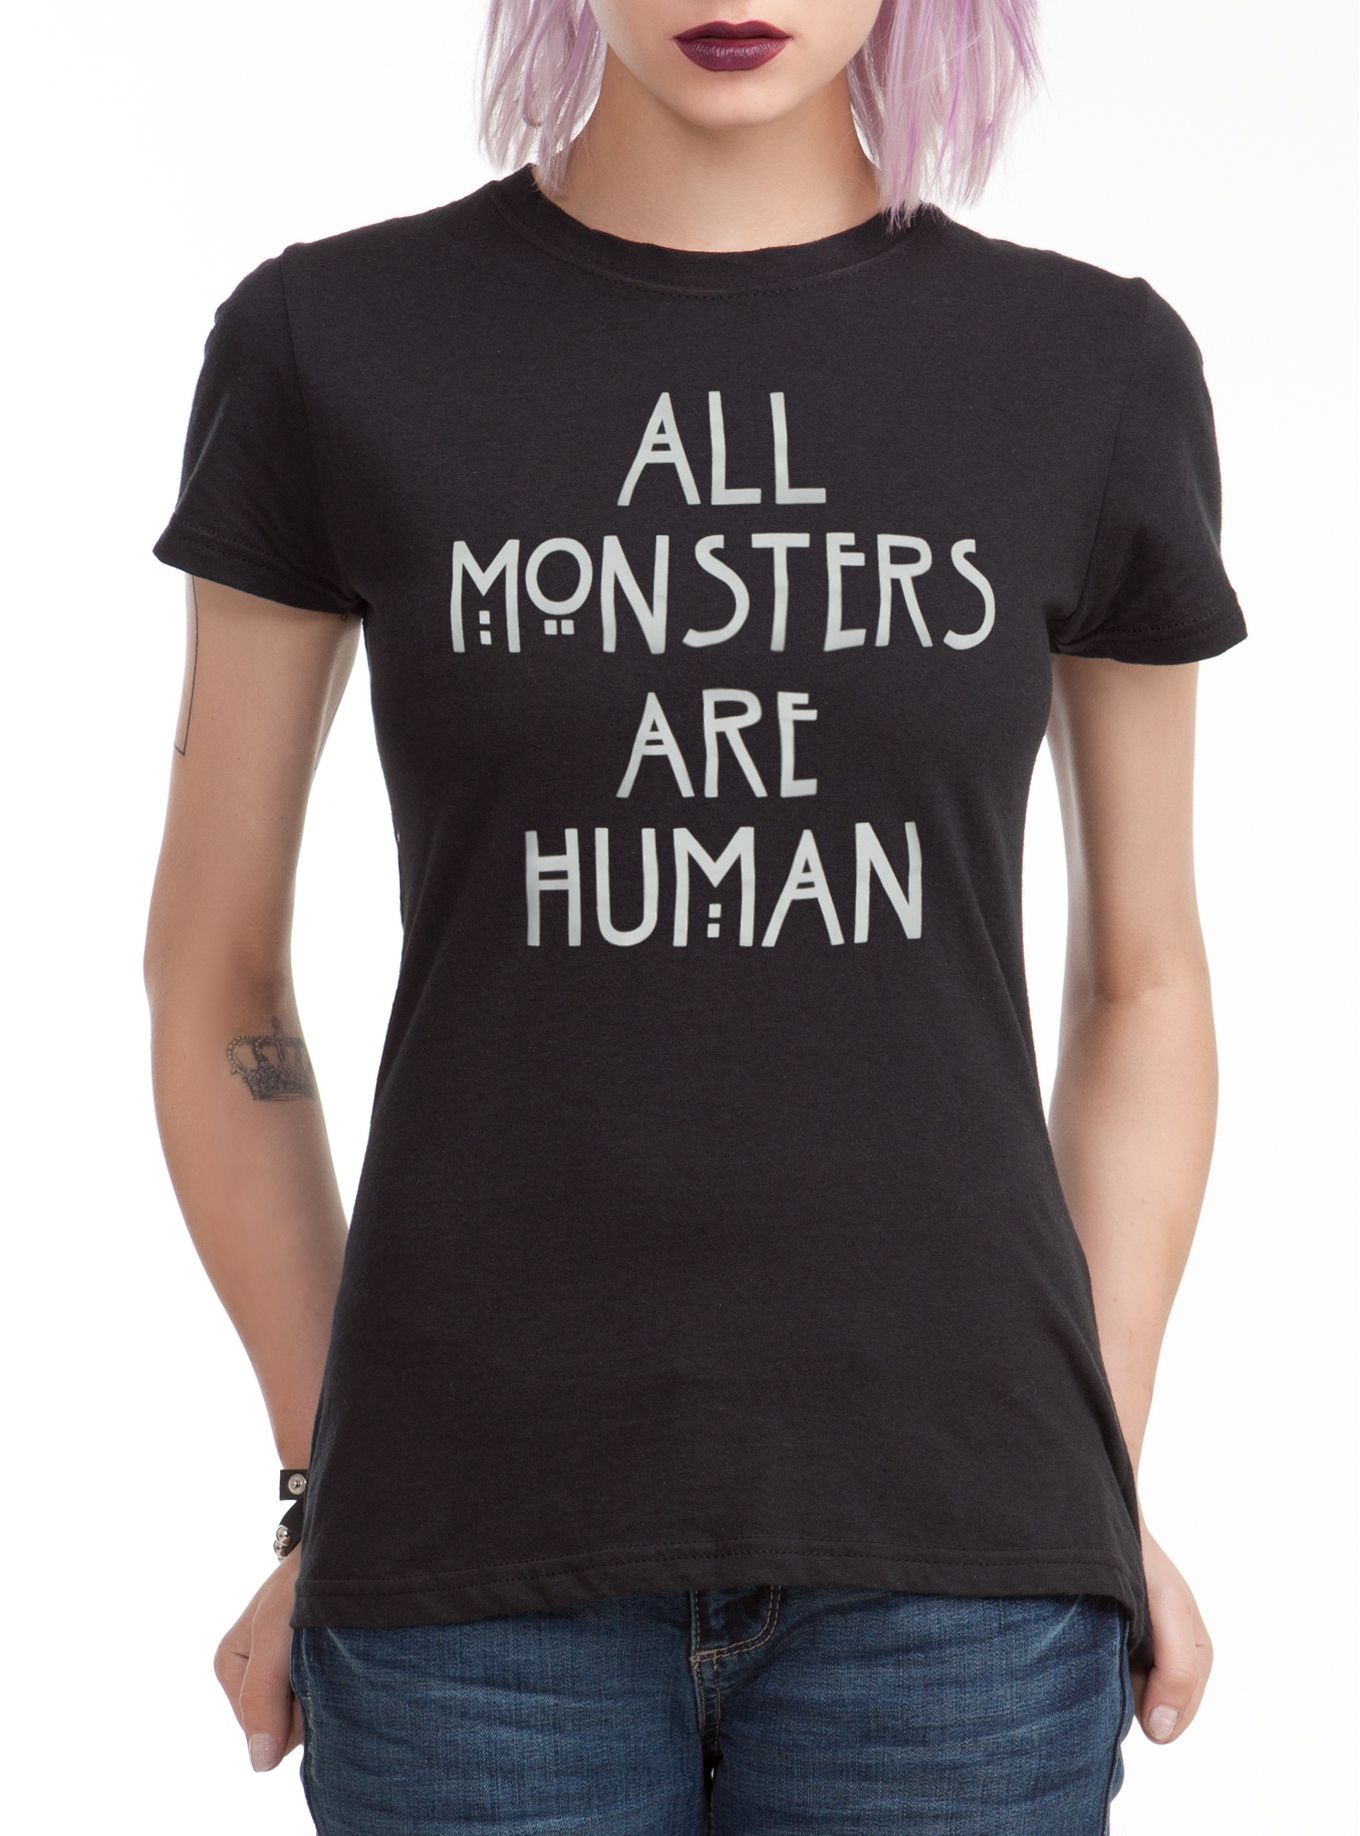 Shirts human design - American Horror Story All Monsters Are Human Girls T Shirt